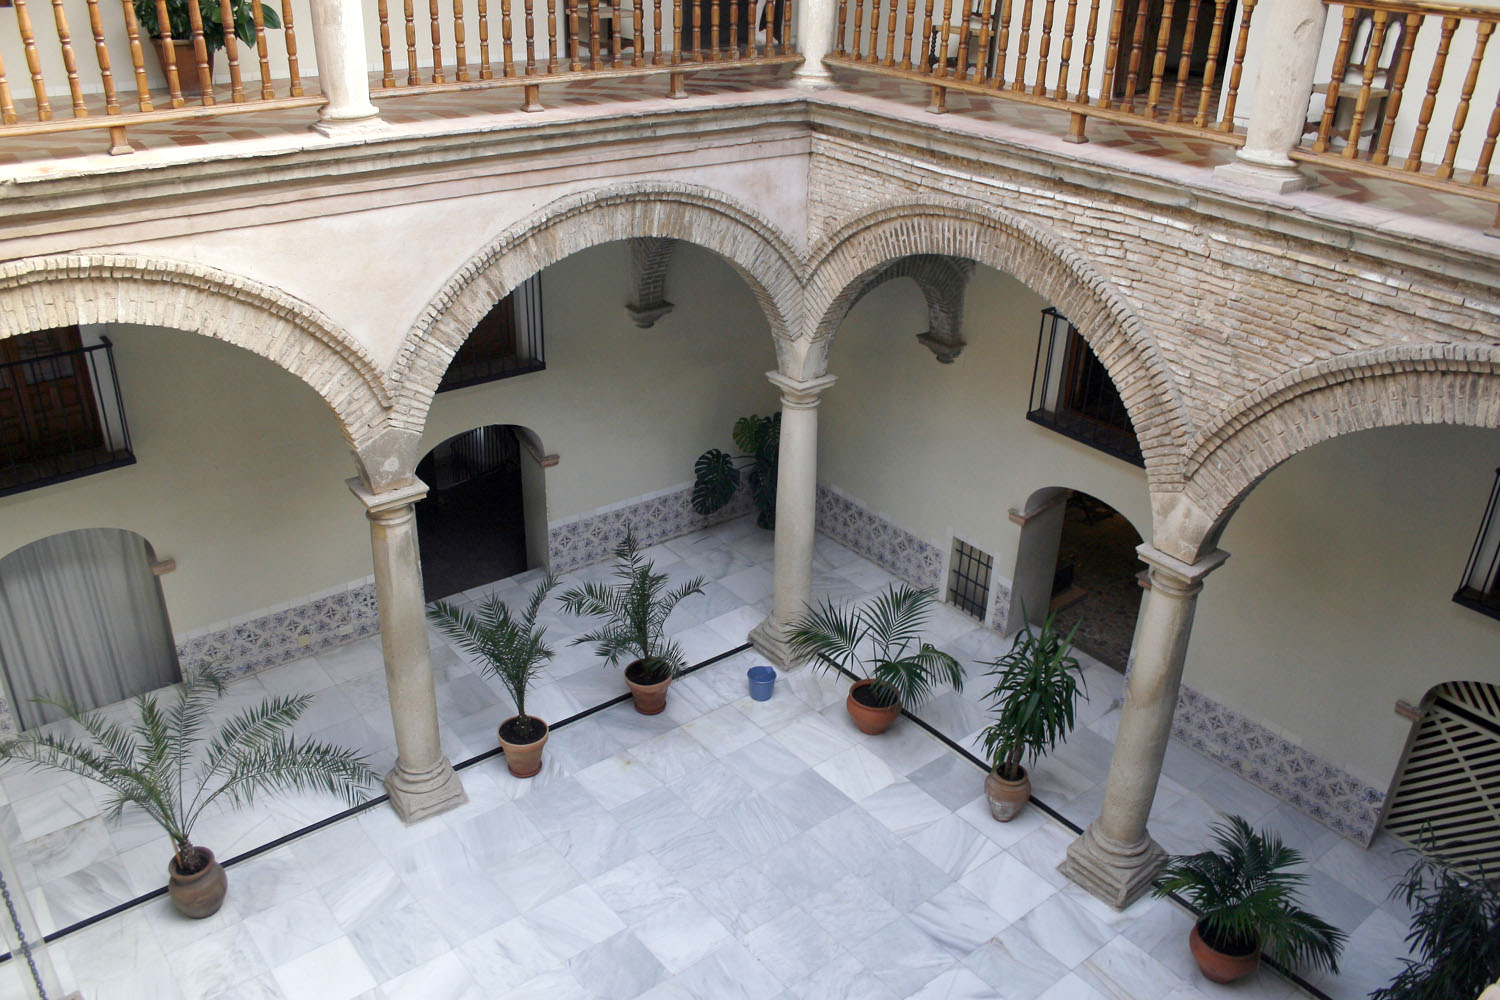 Patio interior del Palacio de Villardompardo